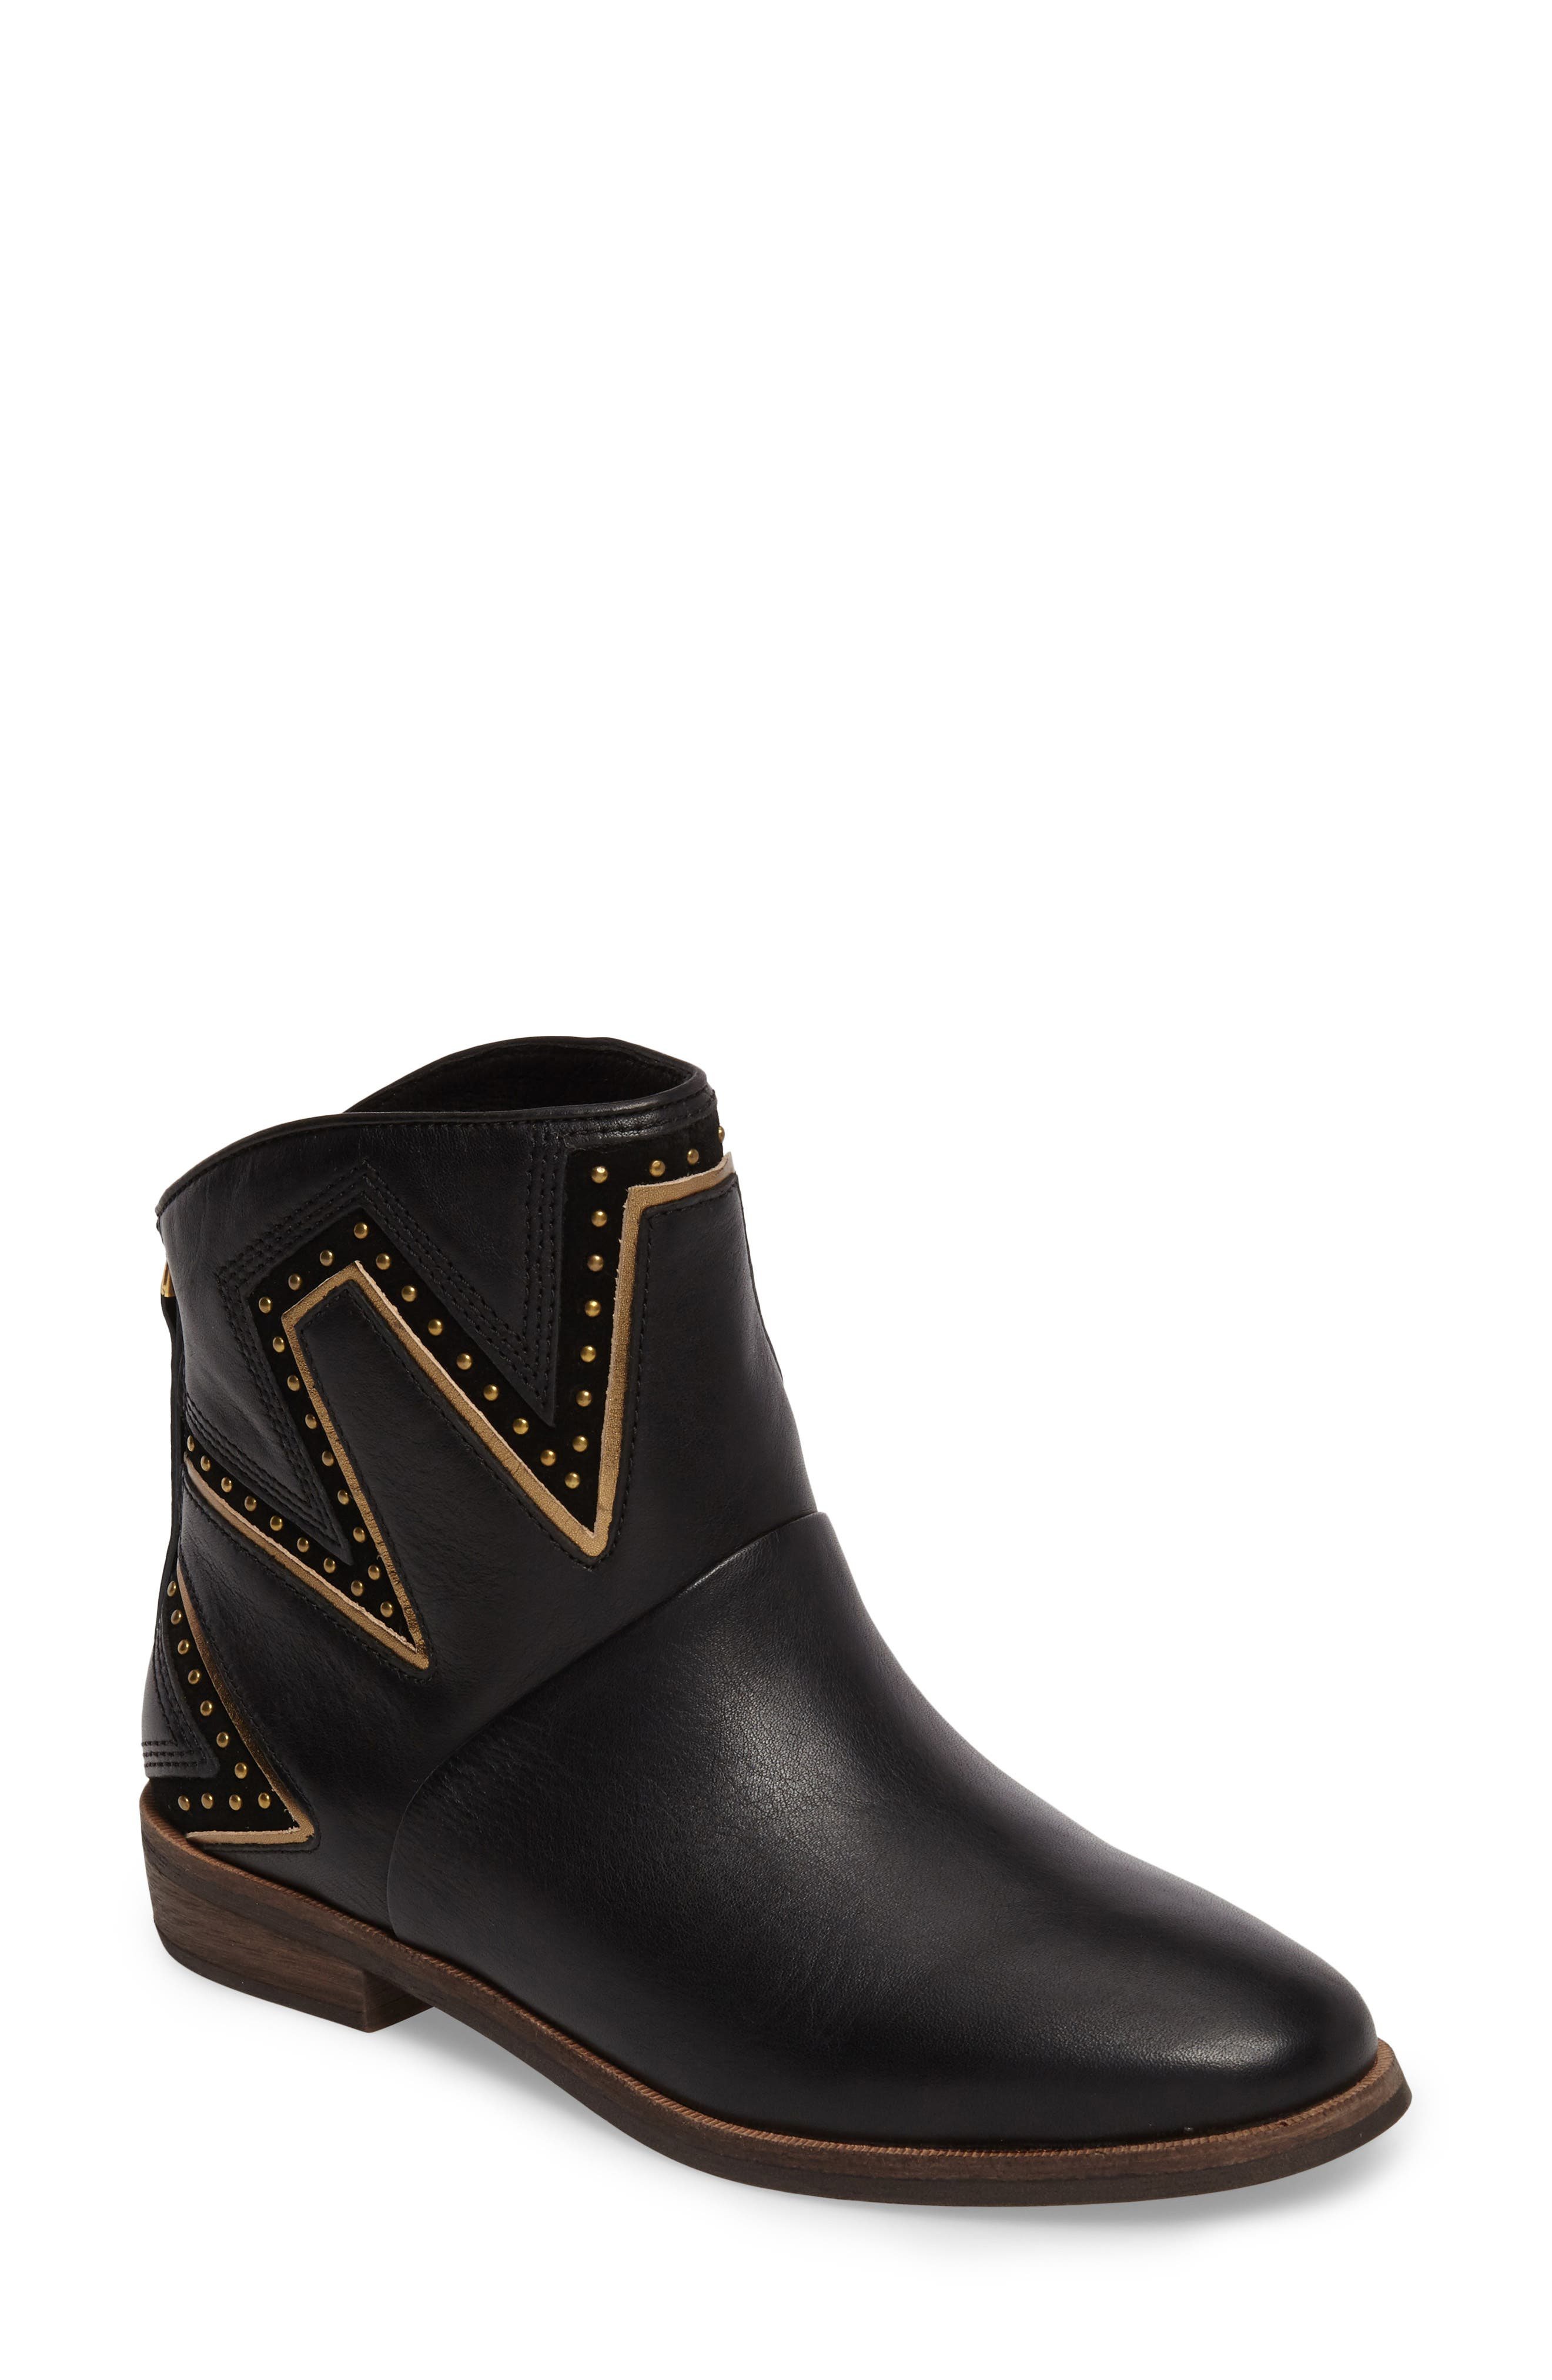 Lars Studded Bootie,                             Main thumbnail 1, color,                             Black Leather